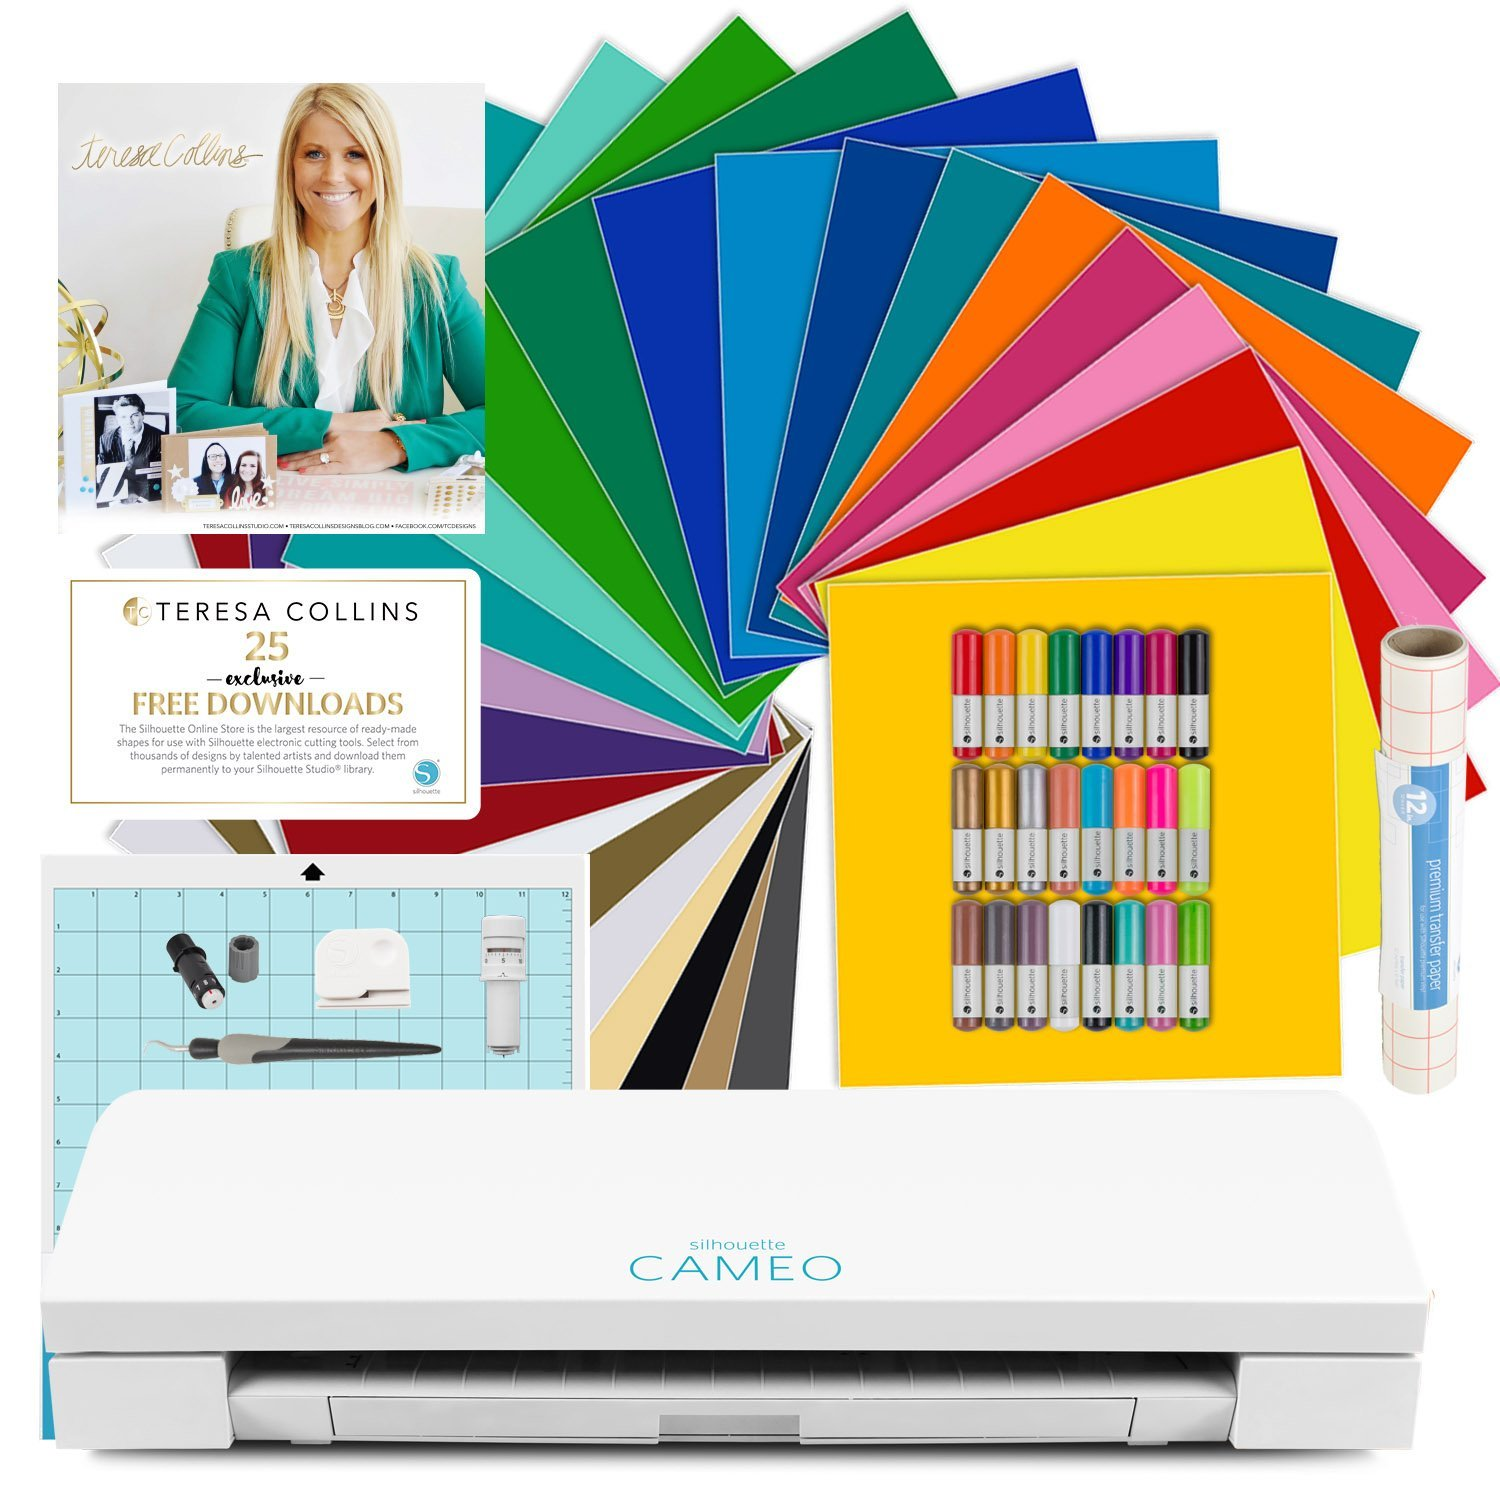 Silhouette CAMEO 3 Bluetooth Machine Bundle - Teresa Collins Exclusive Designs, 24 Oracal 651 Vinyl Sheets, 24 Sketch Pens, Transfer Paper, and More